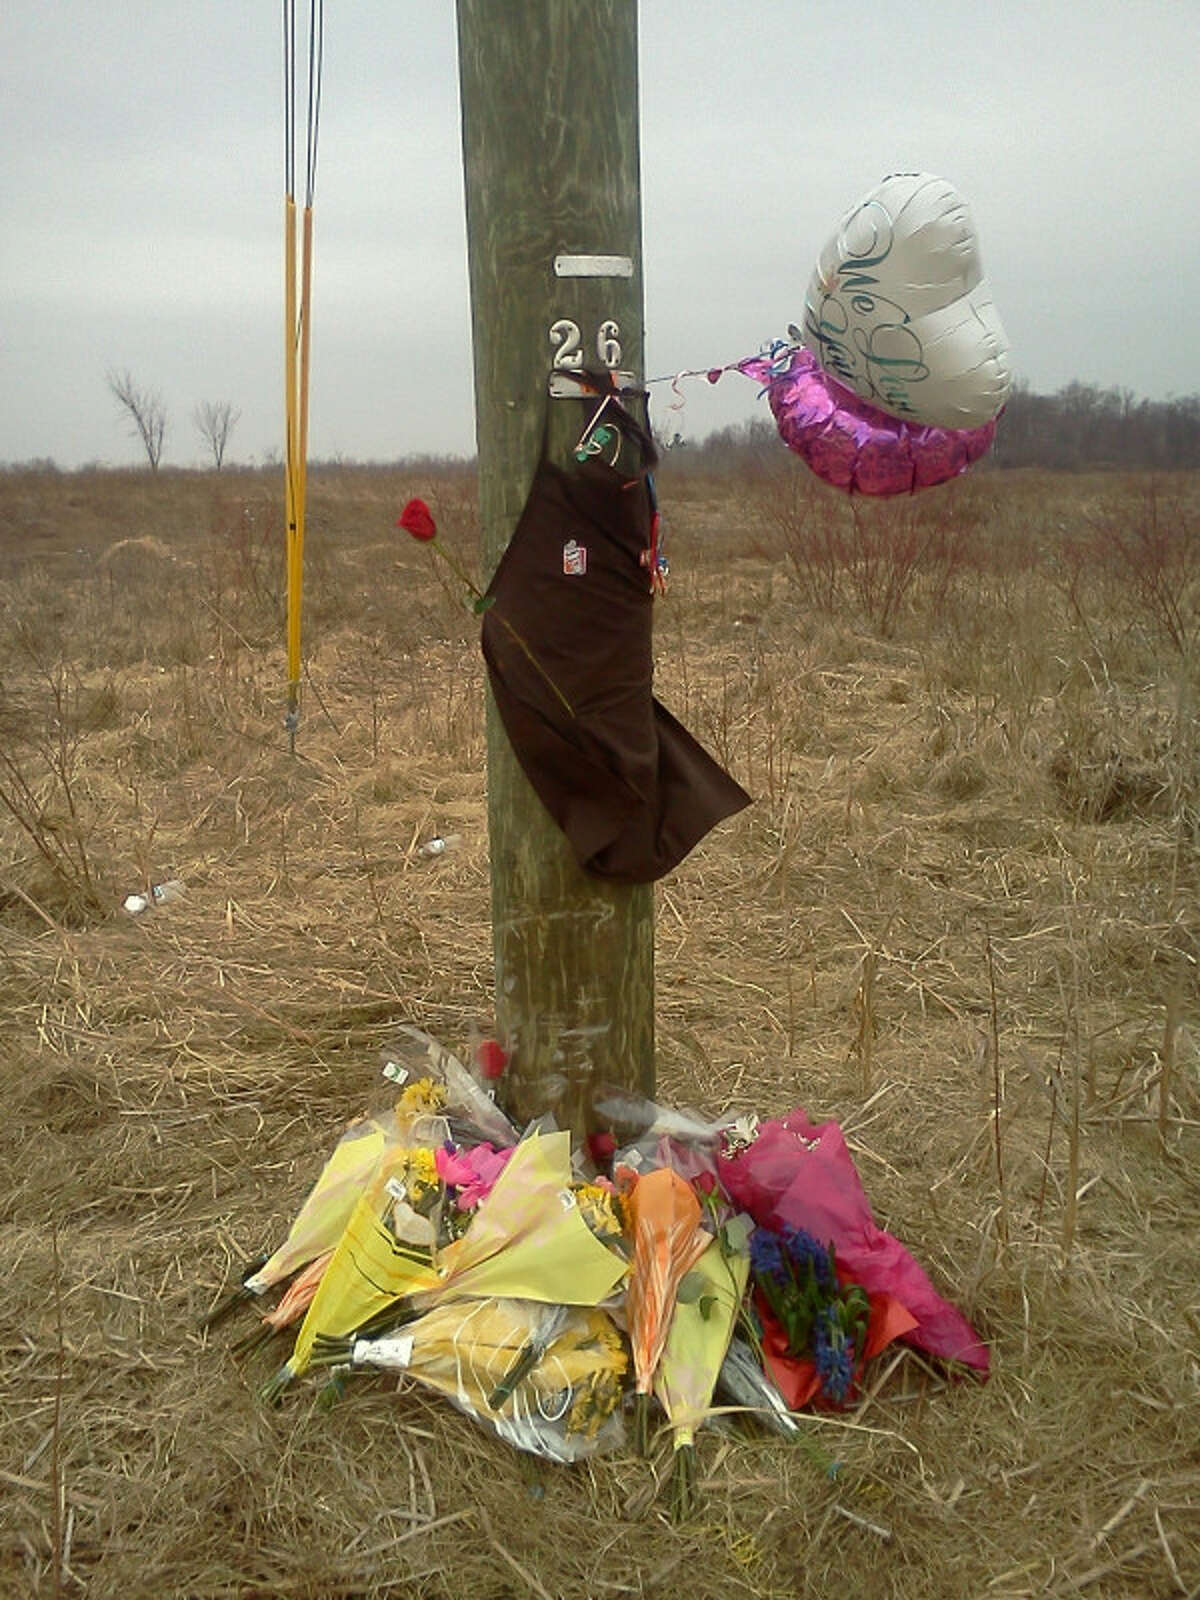 Site of a memorial to a teen killed in a crash on Wednesday, Feb. 15, 2012, in Halfmoon. (Dennis Yusko/Times Union)